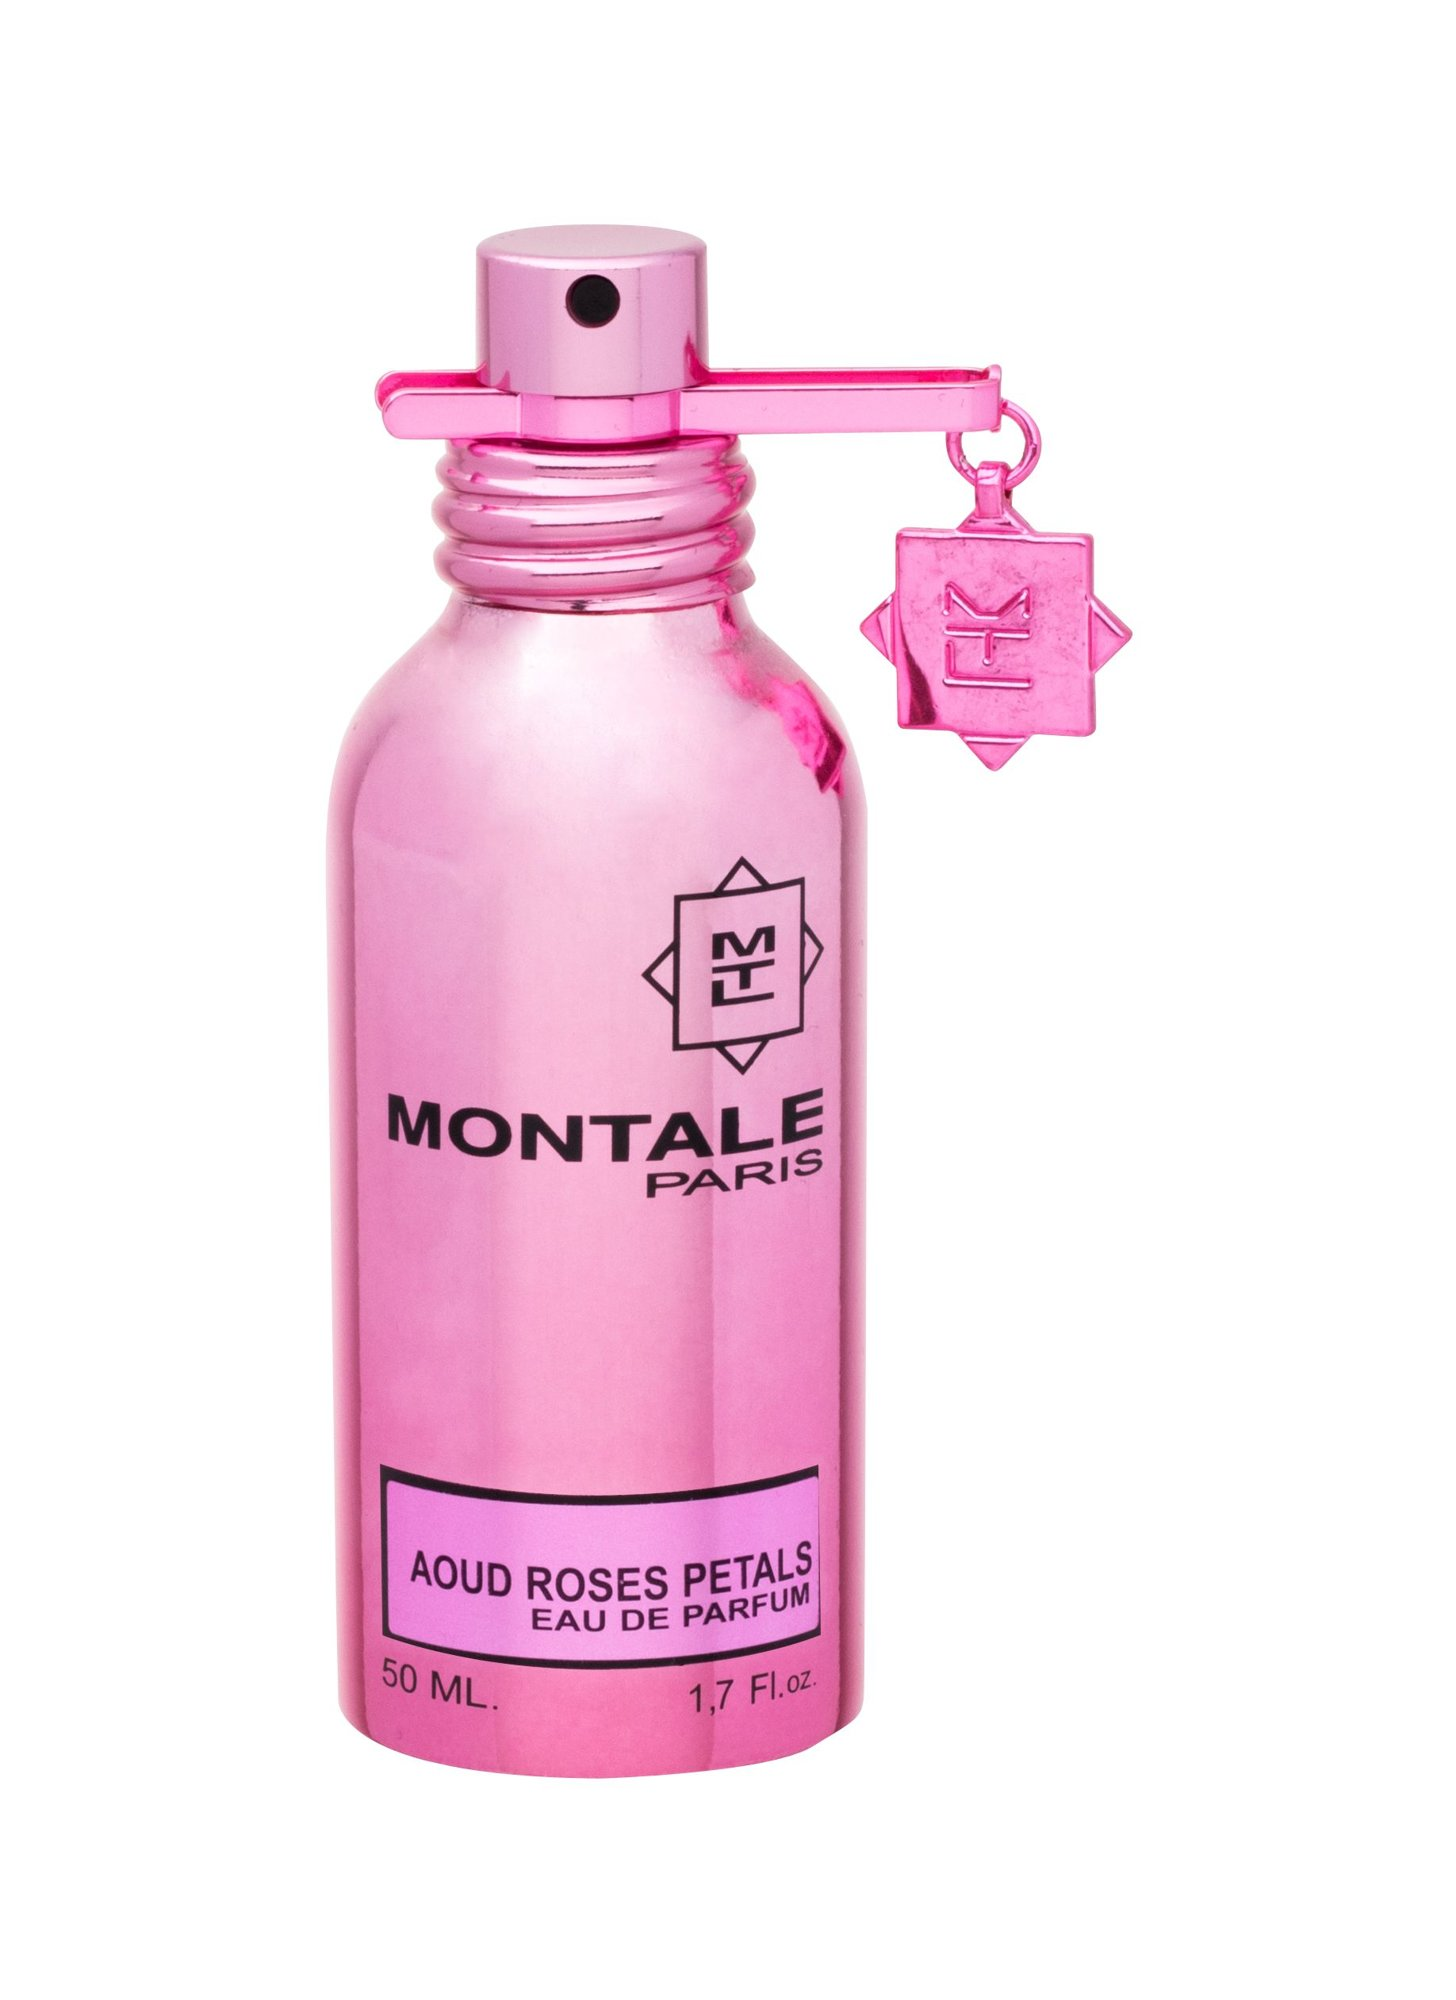 Montale Paris Aoud Roses Petals EDP 50ml